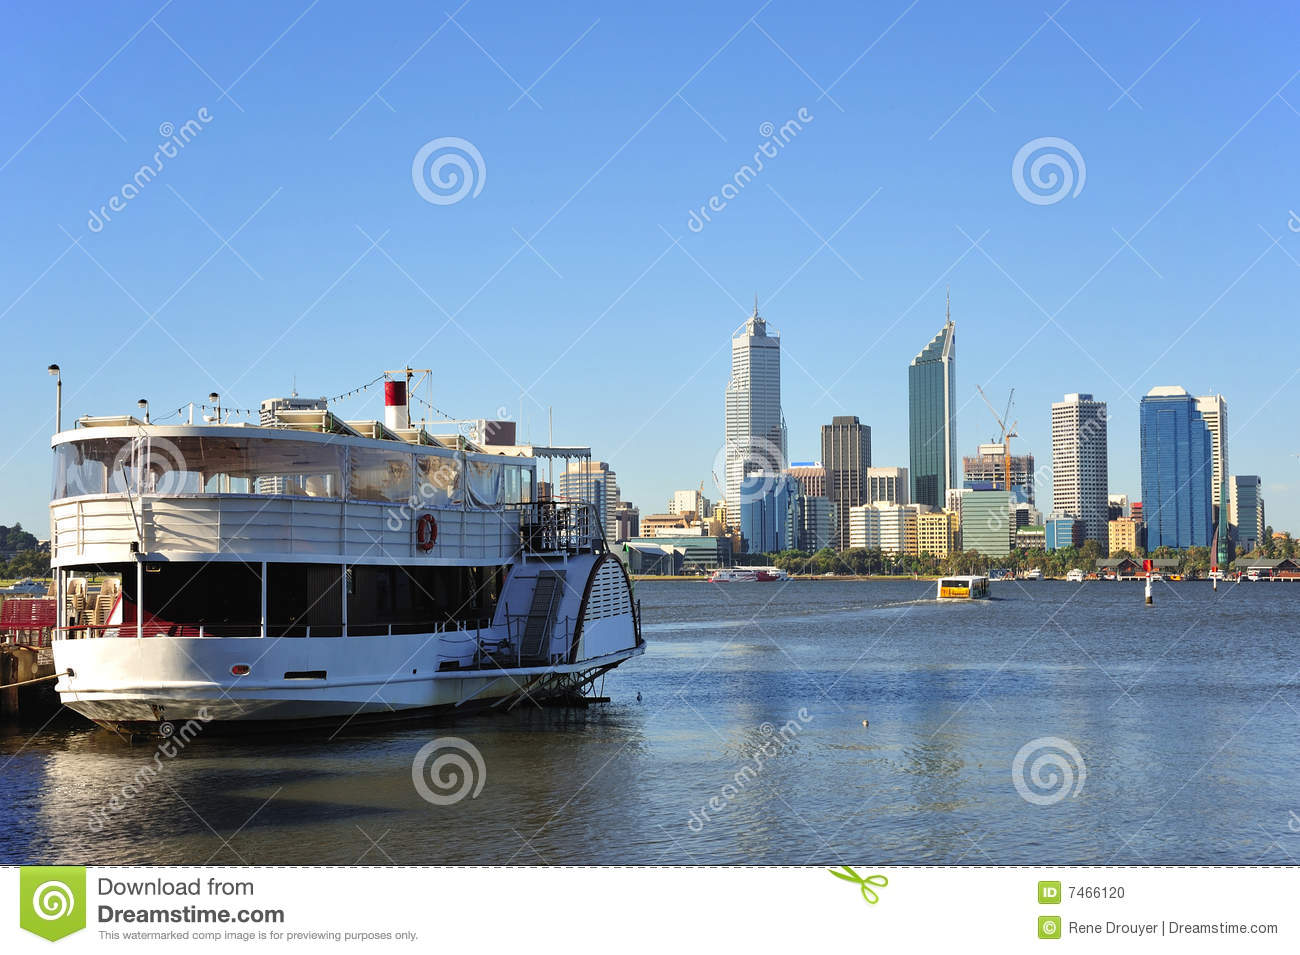 In Australia A Panoramic View Of The Modern Perth 39 S City With The Swan